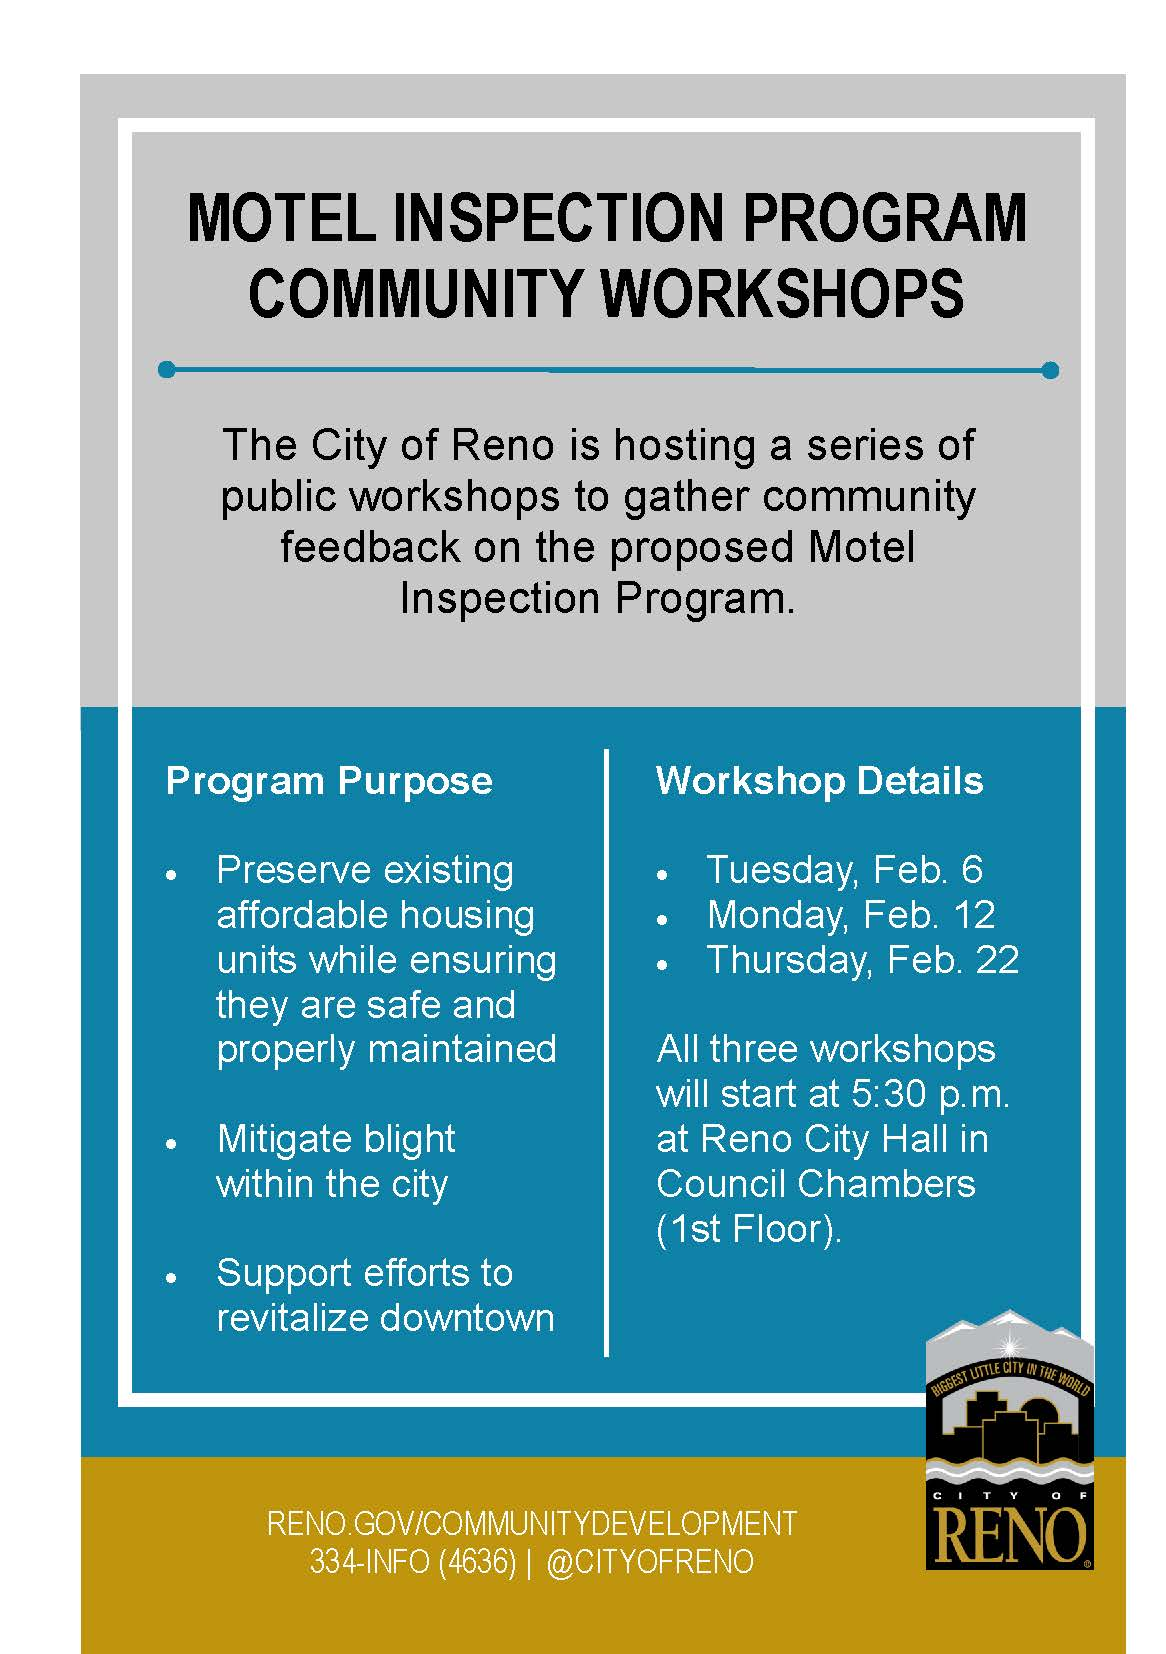 Motel Inspection Program community workshops on 2/6/18, 2/12/18, and 2/22/18 at Reno City Hall at 5:30 p.m.